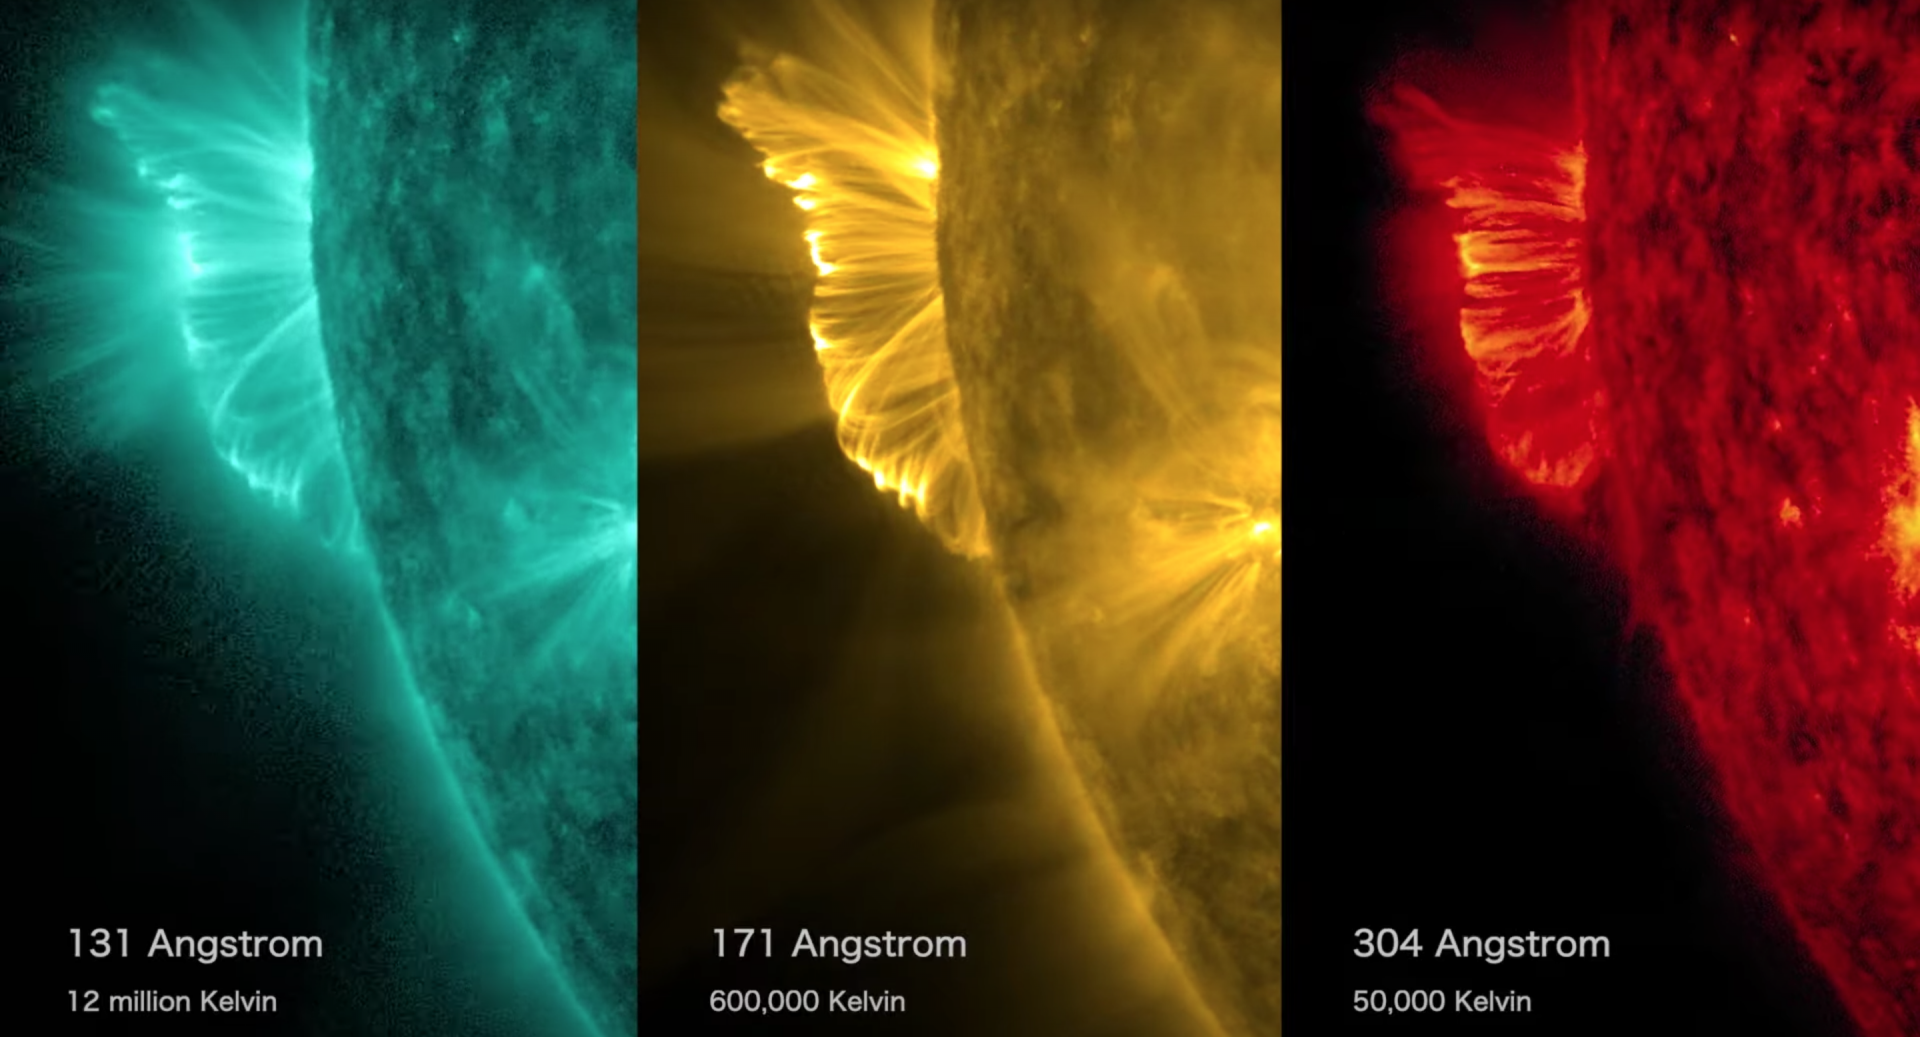 NASA's Solar Dynamics Observatory captured stunning imagery of a solar flare.